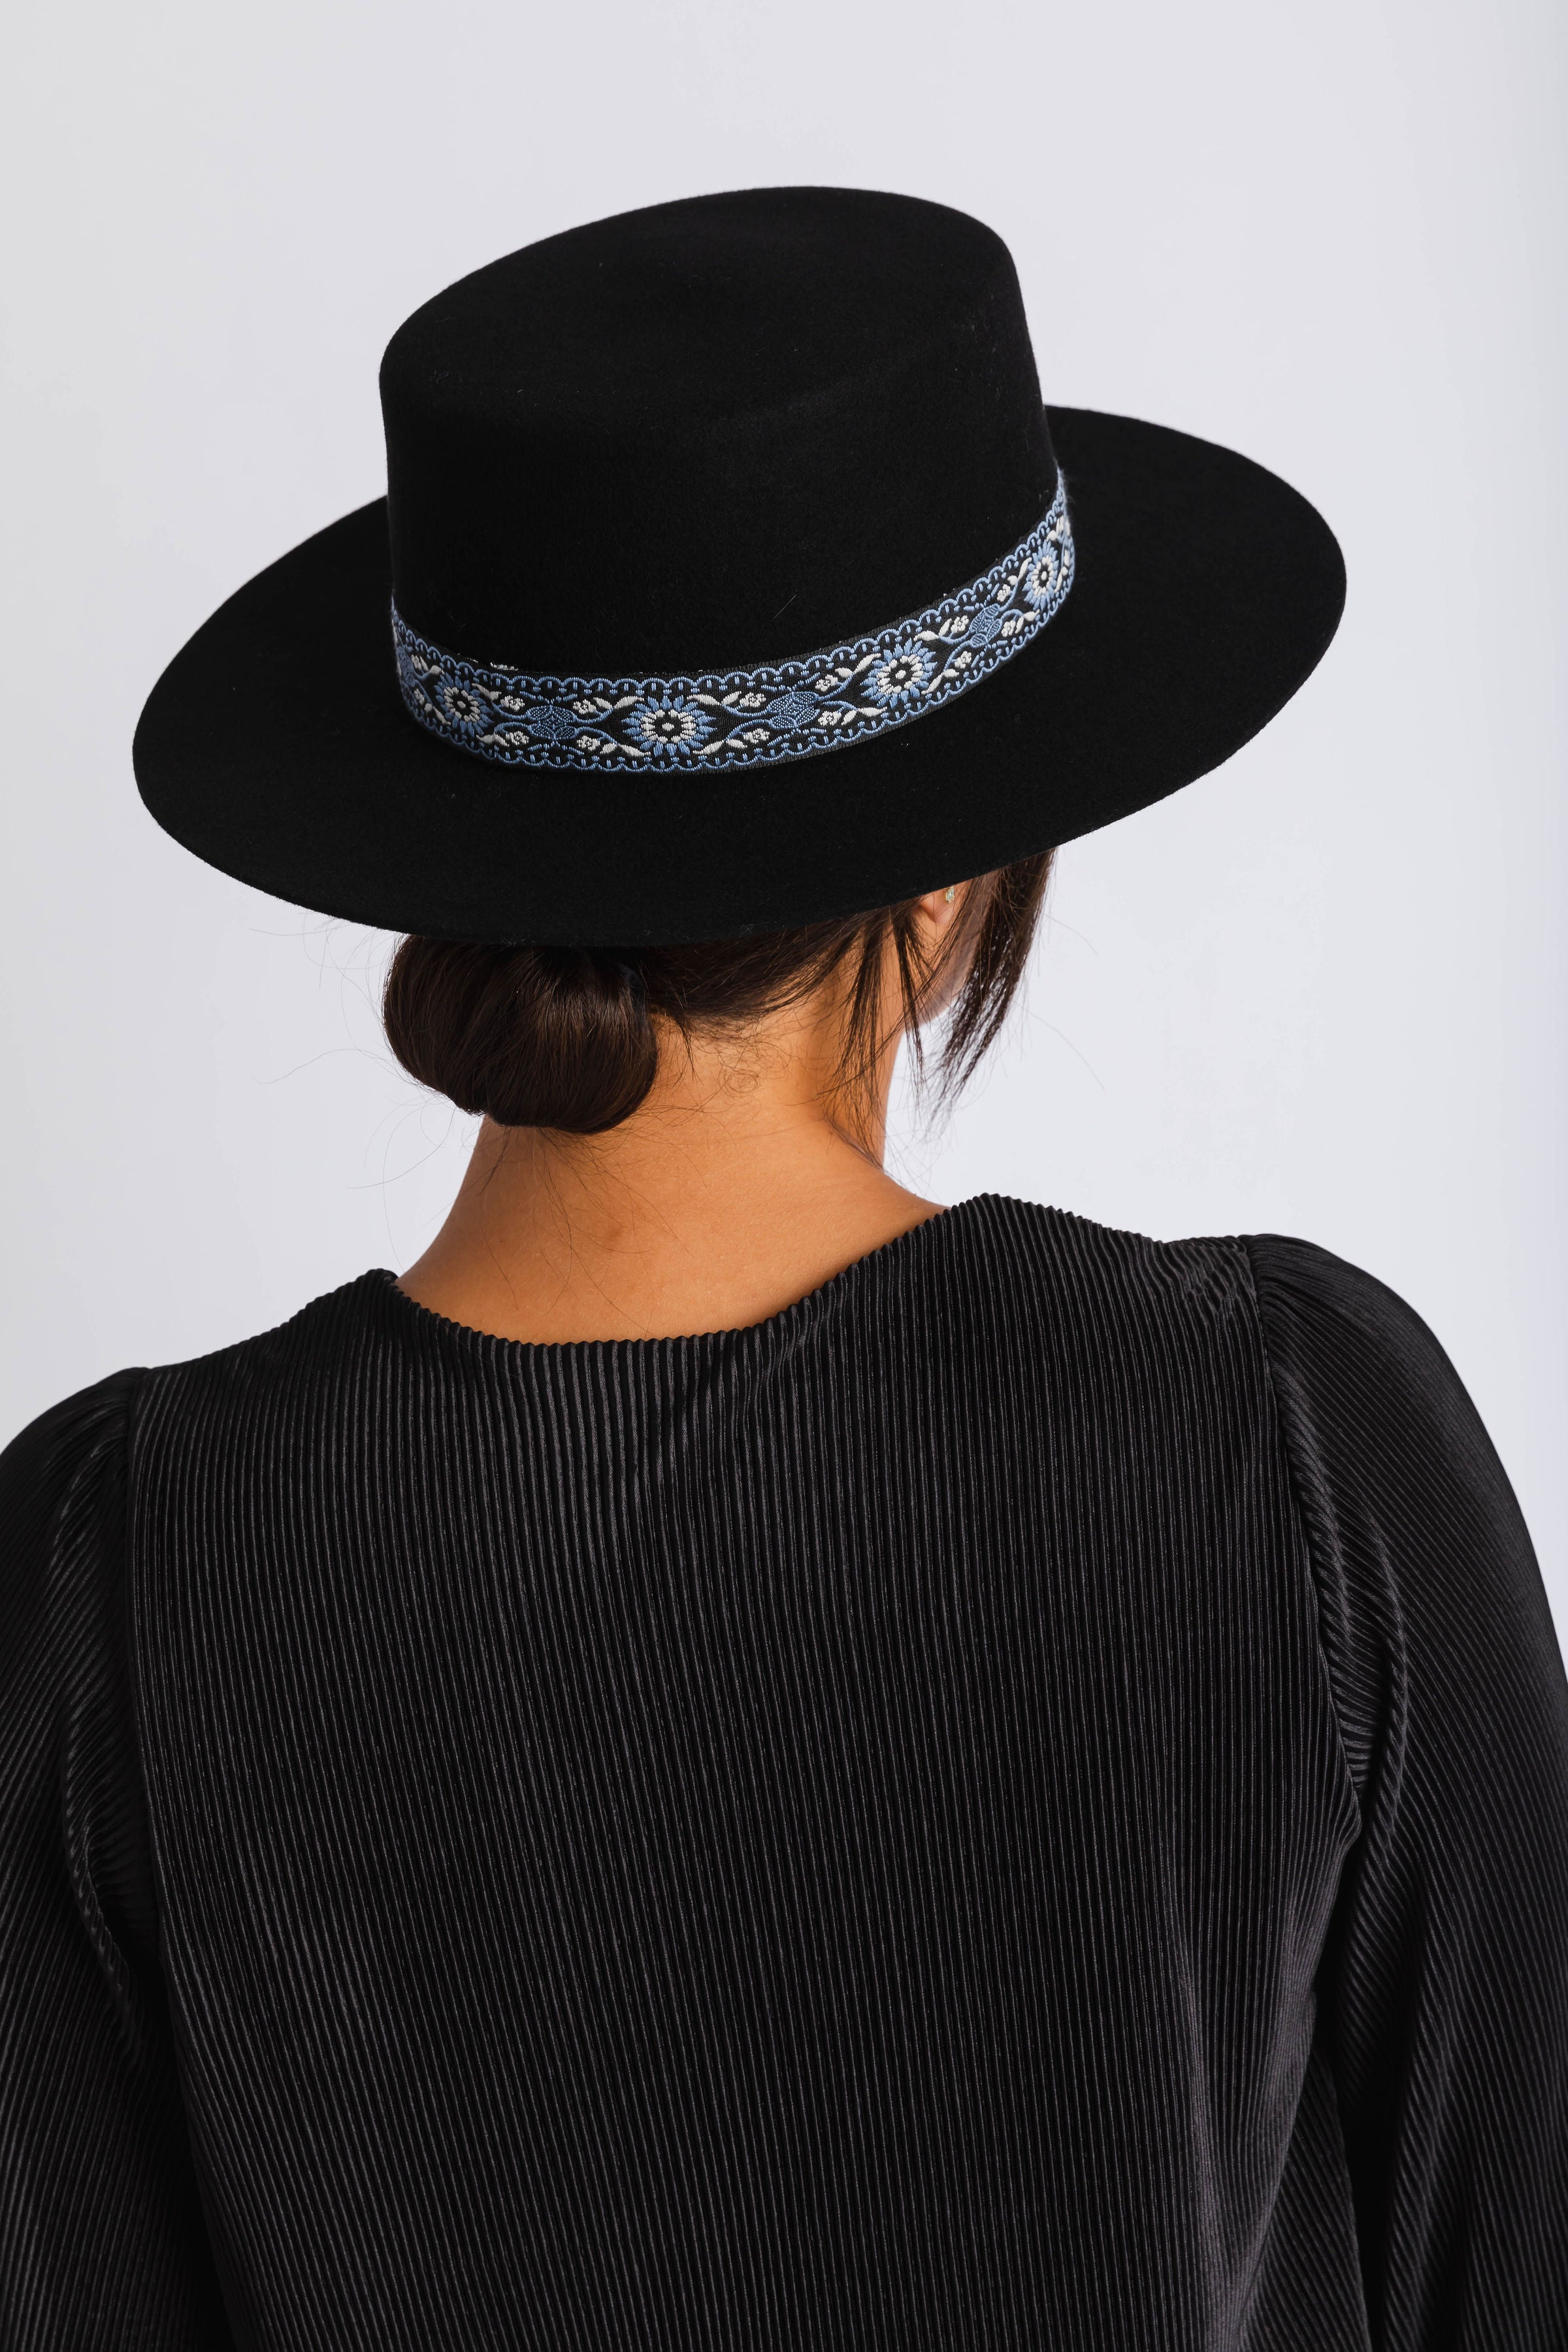 The Dakota is a women's black boater with patterned ribbon trimmed on the crown.